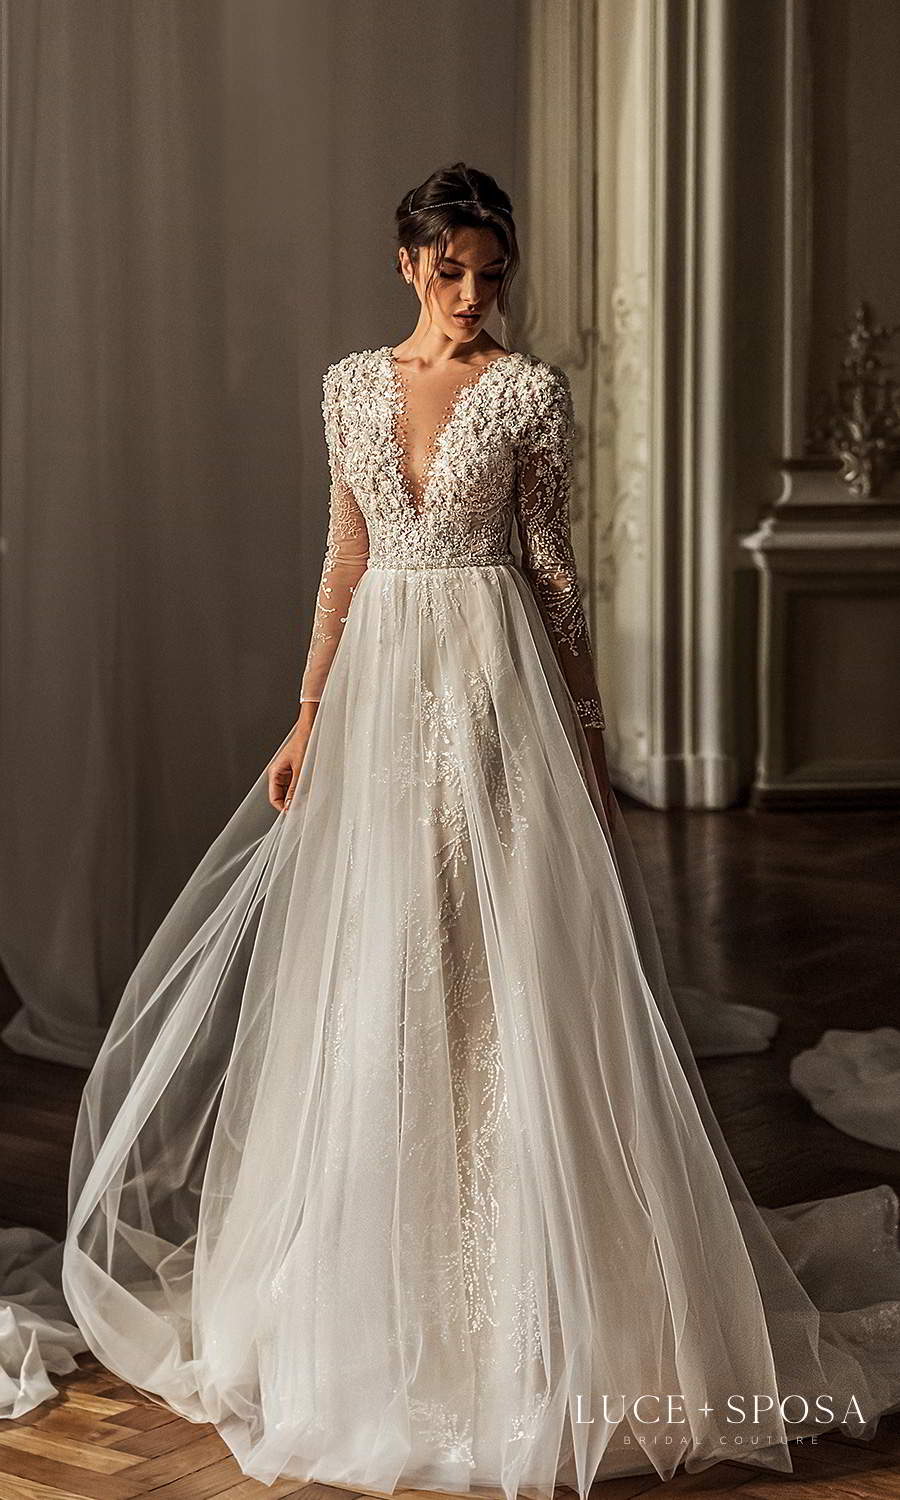 luce sposa 2021 shades of couture bridal long sleeves plunging v neckline heavily embellished bodice a line ball gown wedding dress chapel train (morgan) mv